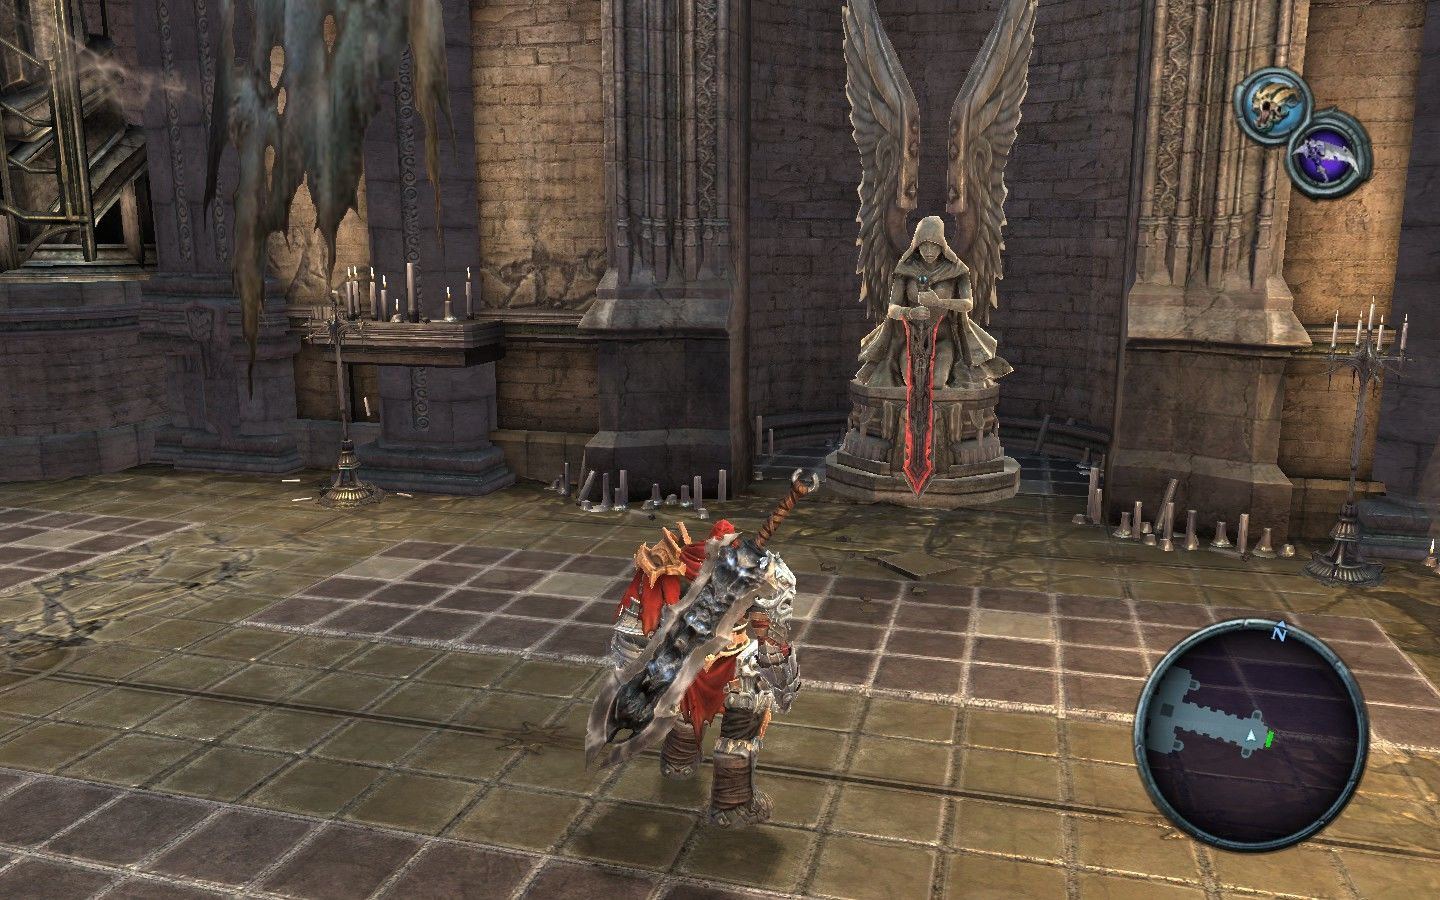 Darksiders Windows Always harden your spirit through prayers.